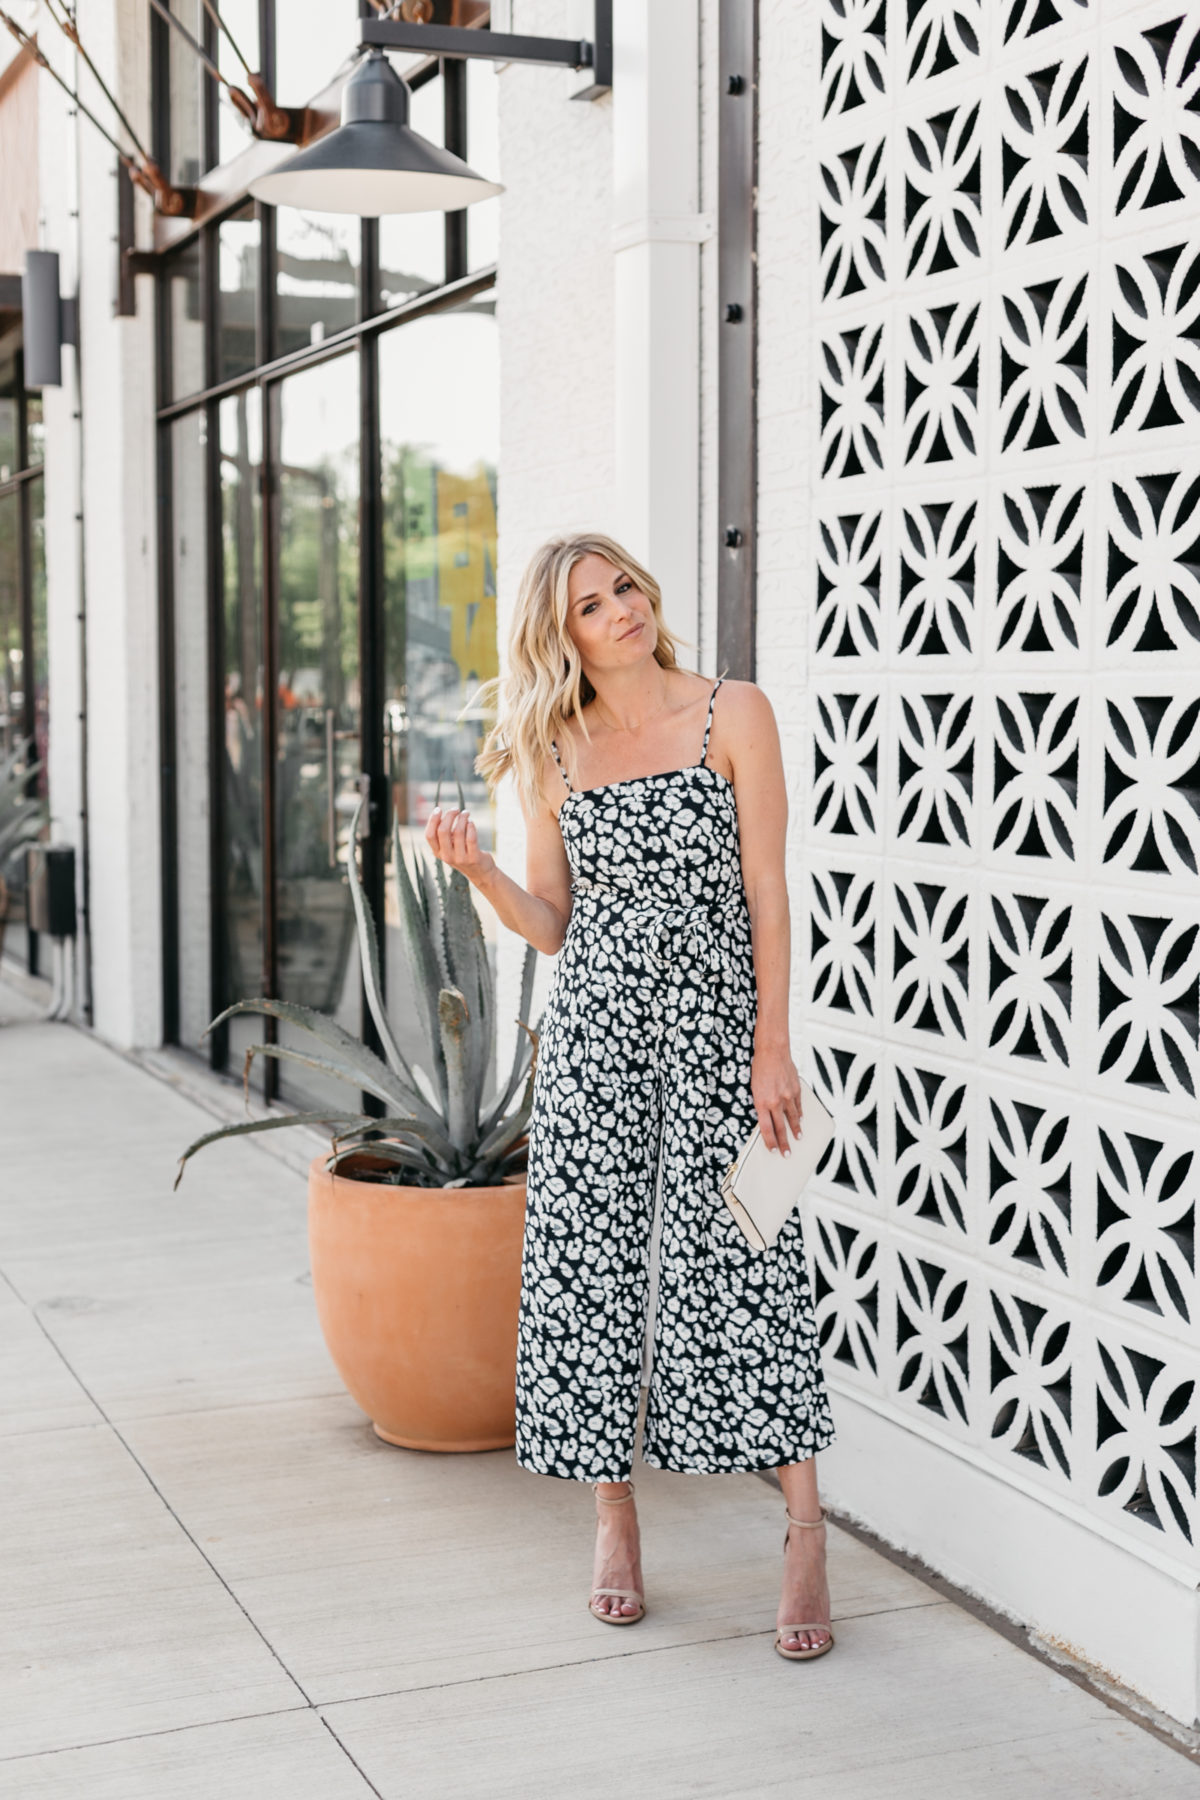 One Small Blonde is wearing a jumpsuit from Banana Republic